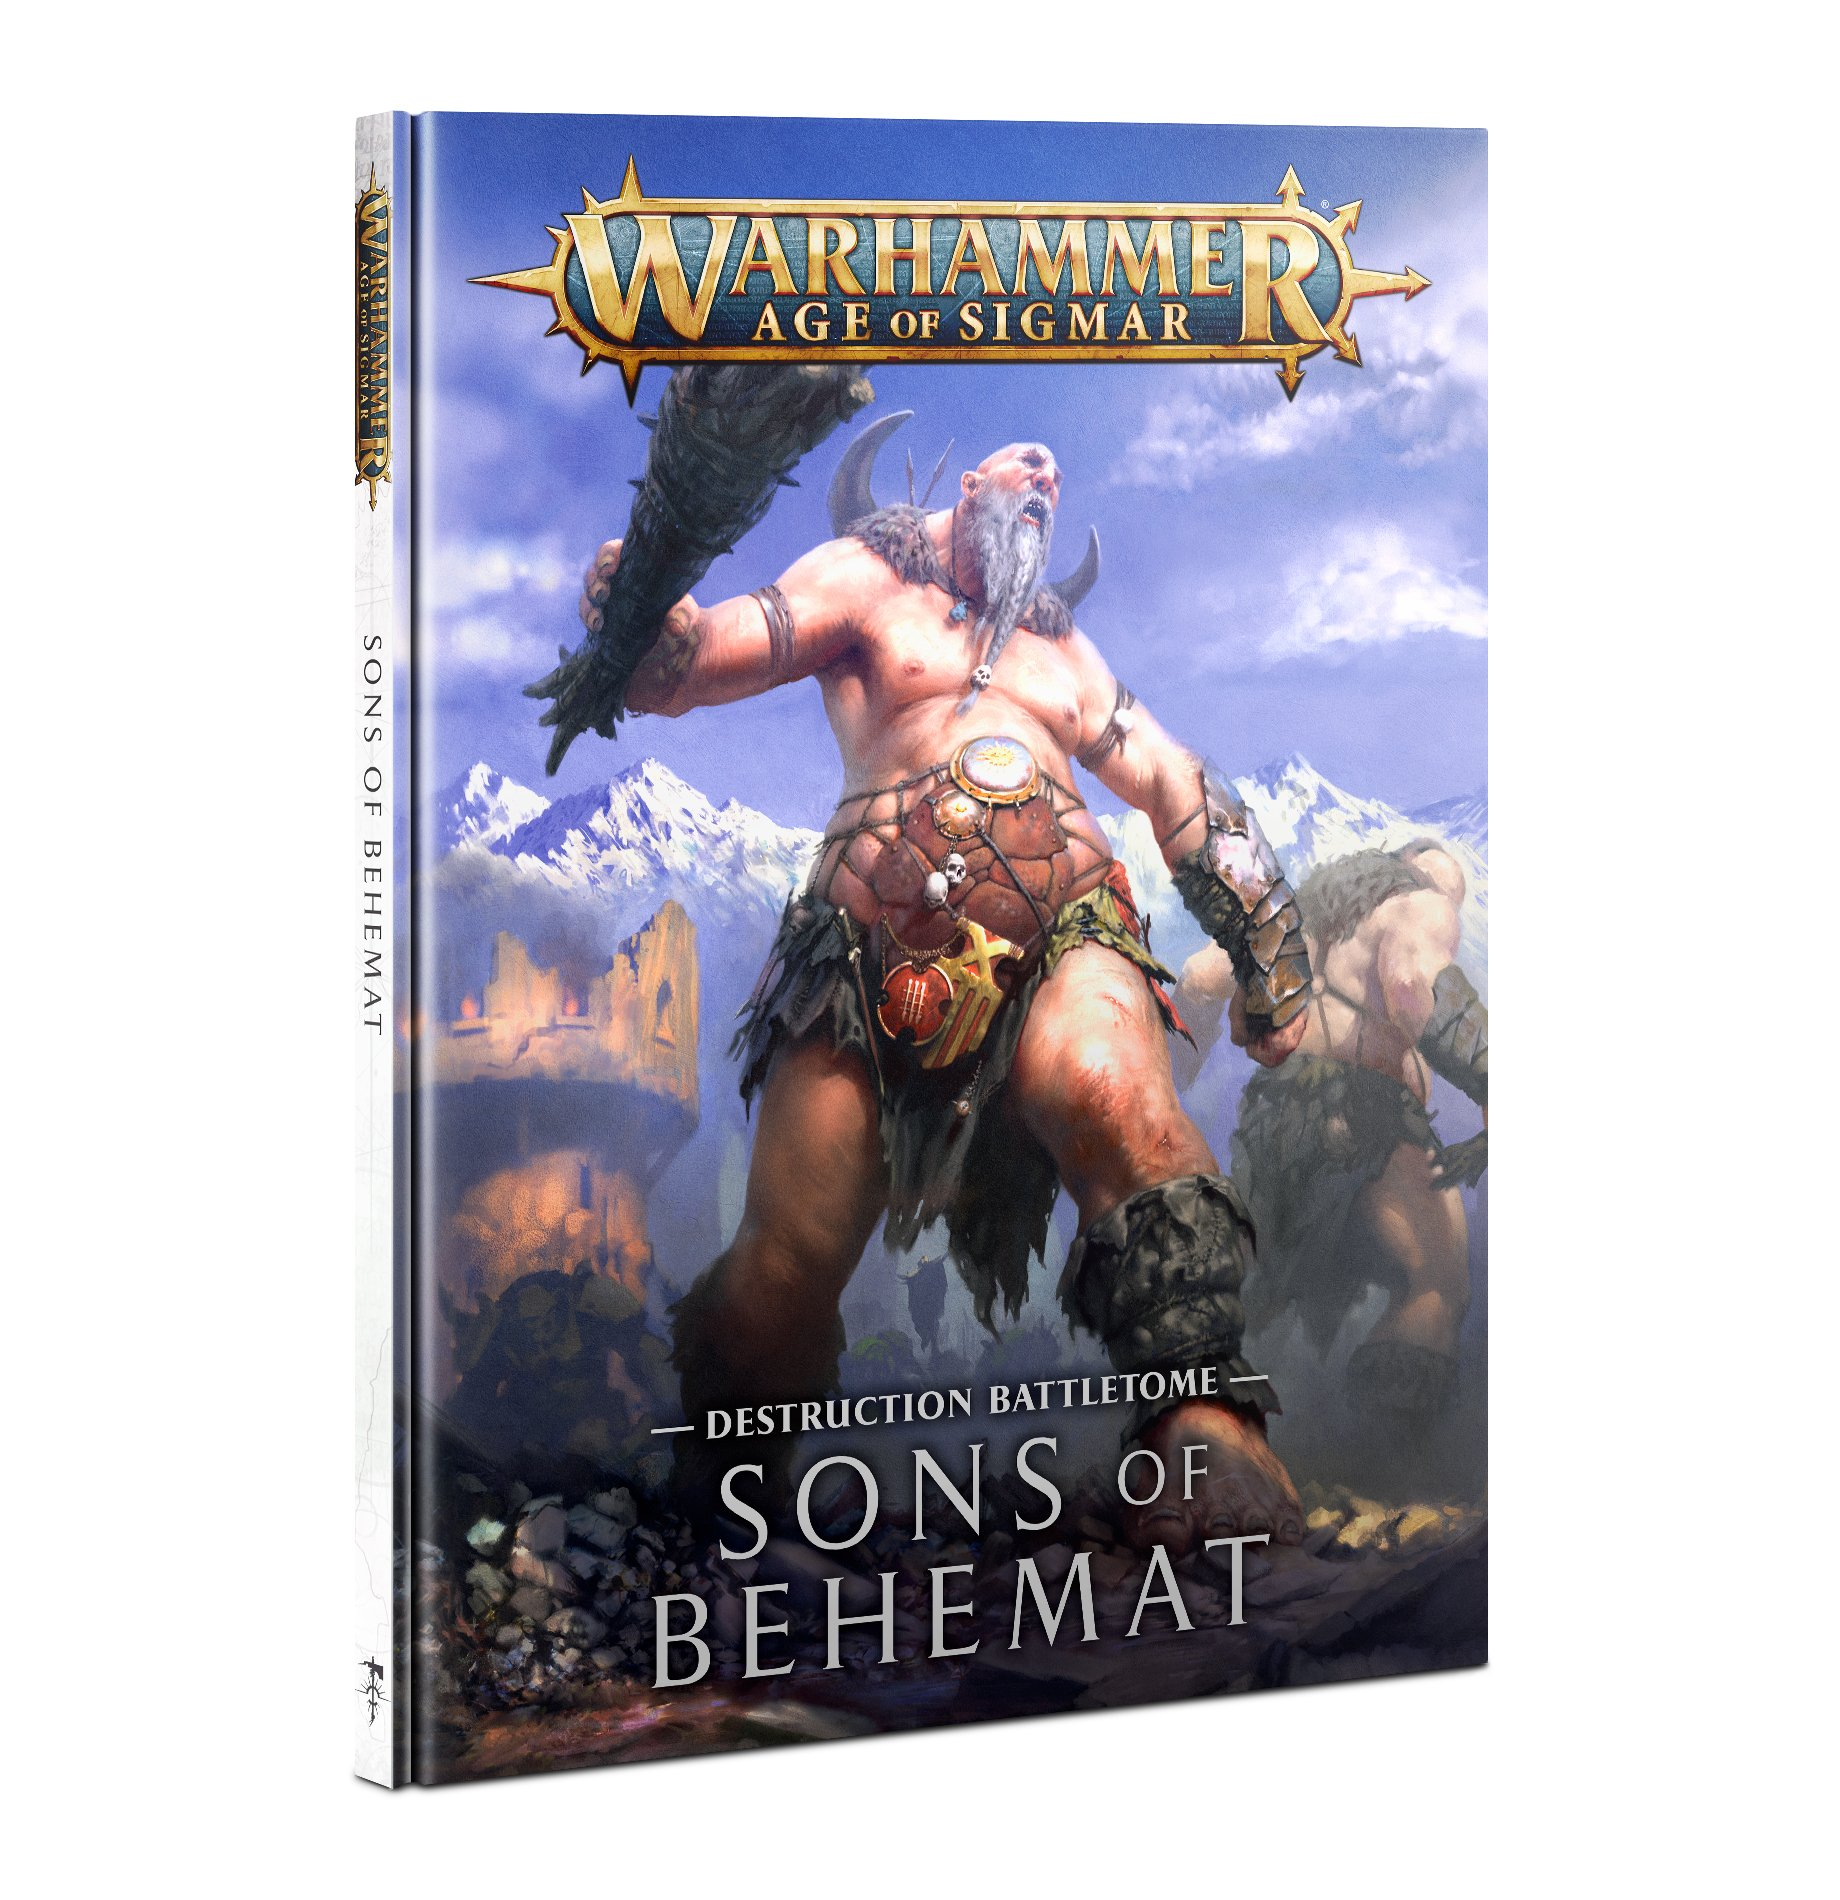 Warhammer Age of Sigmar: Battletome: Sons of Behemat